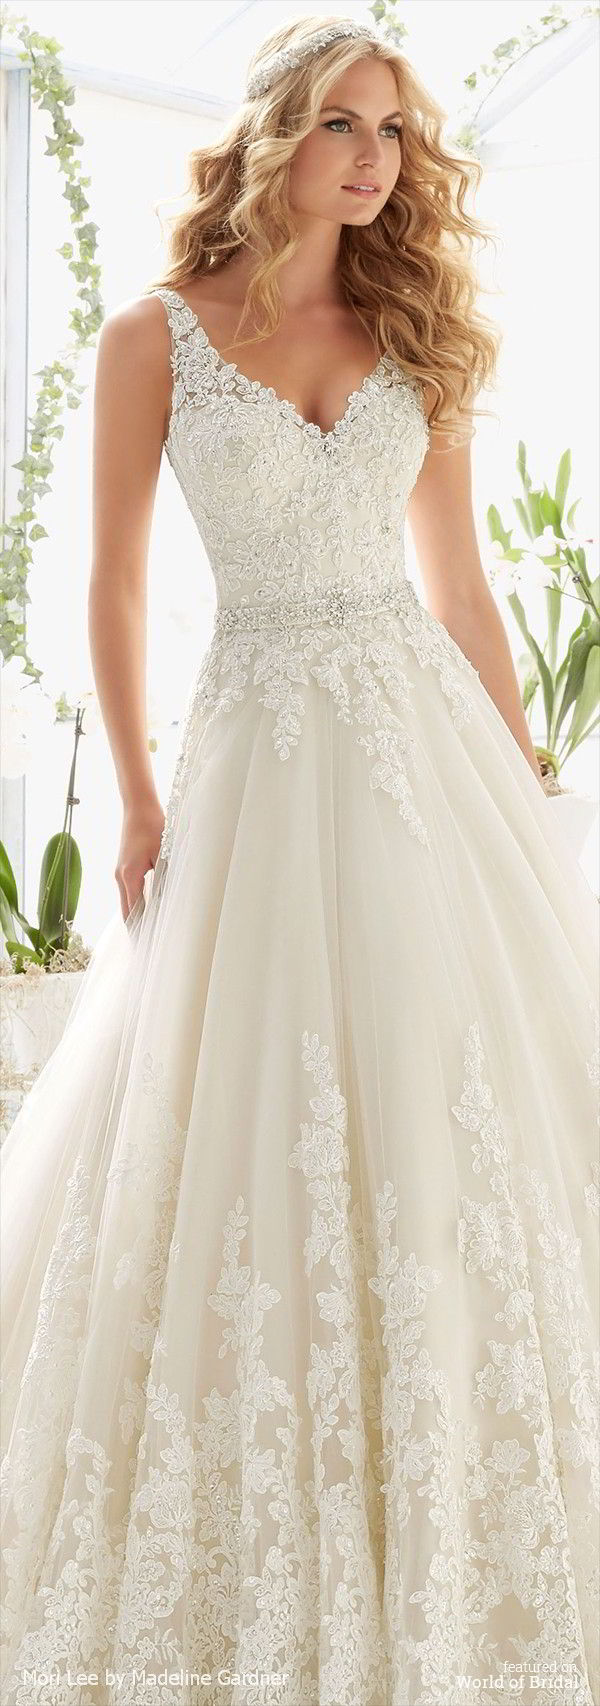 Mori Lee by Madeline Gardner Spring 2016 Wedding Dresses - World of ...